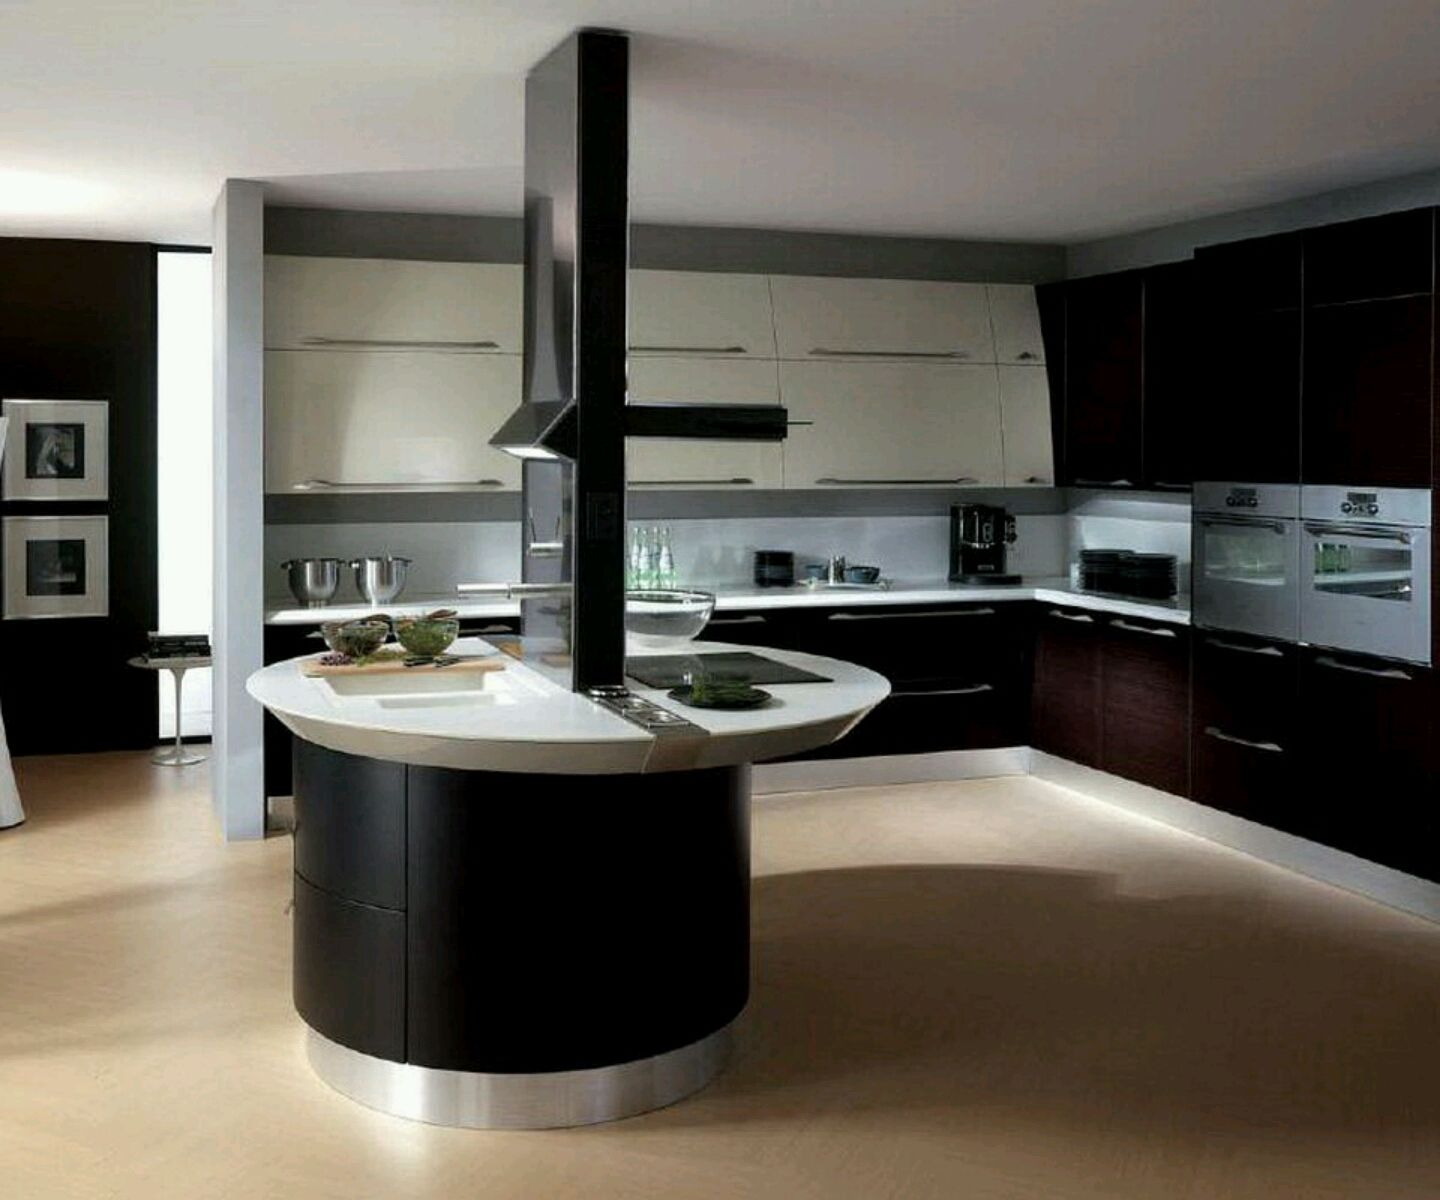 Luxury Modern Kitchen Designs Decoration Mesmerizing Smart Kitchen Islands  Buscar Con Google  Arquitectura Y . Inspiration Design